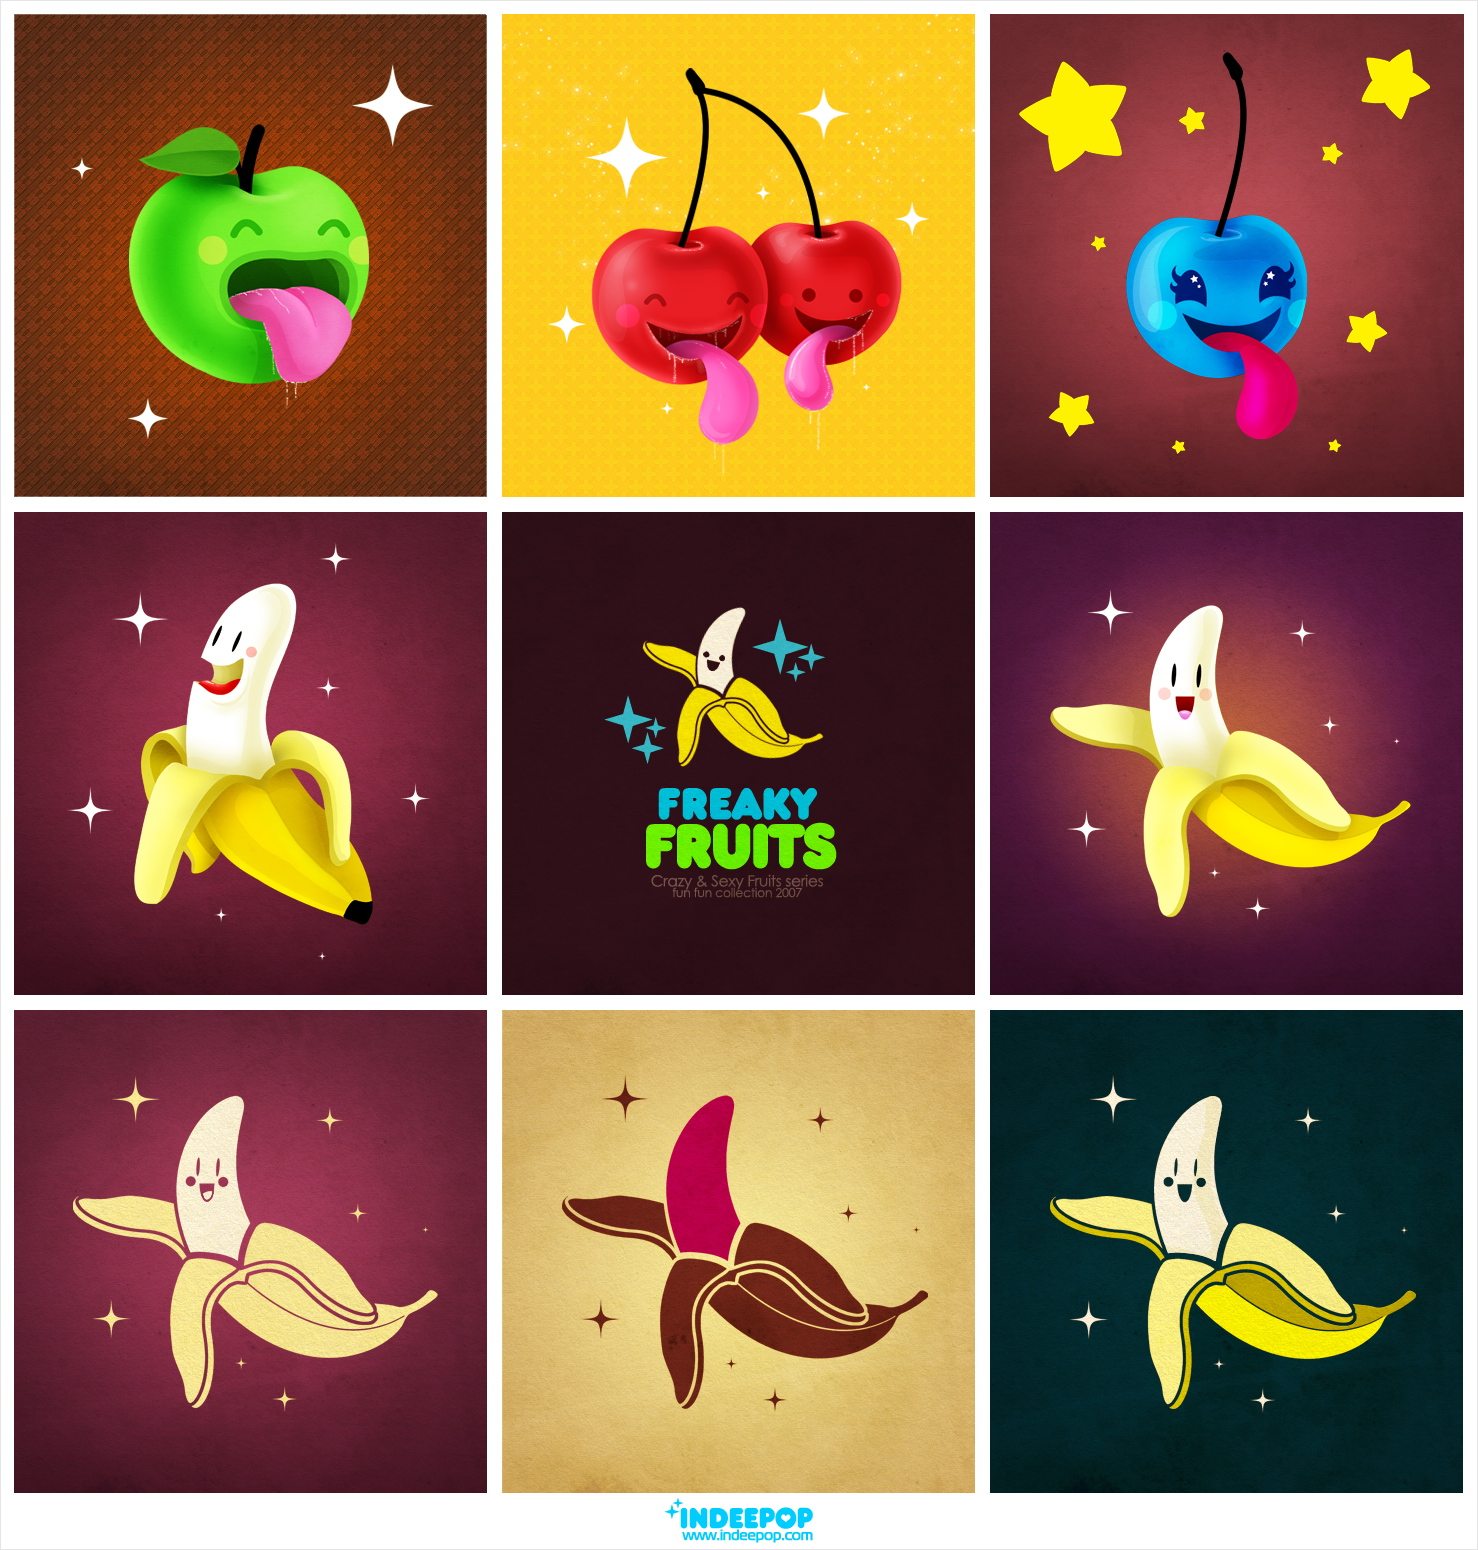 Freaky Fruits by dimpoart